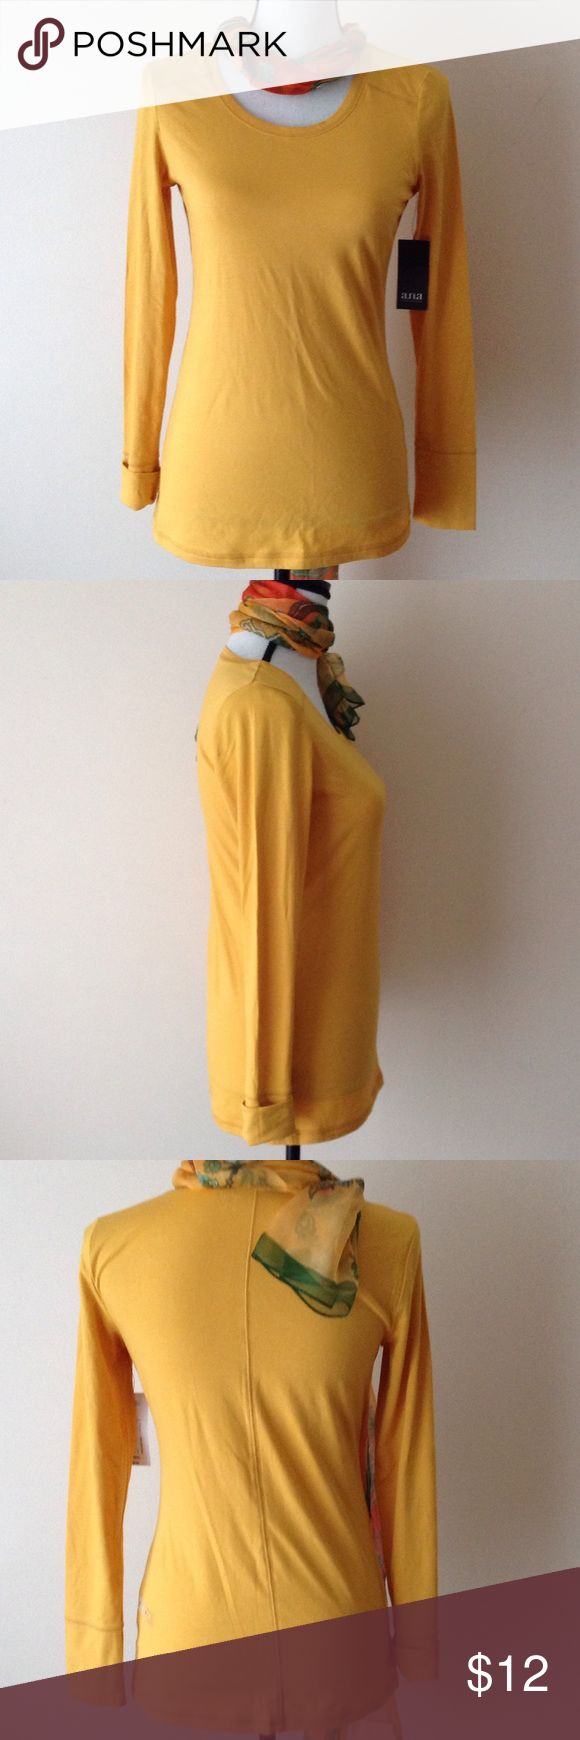 a.n.a. Mustard Shirt Cute basic stretchy shirt which makes a great layering piece or alone. Tag lists size as XS but this would also fit a small....especially if layering. a.n.a Tops Tees - Long Sleeve